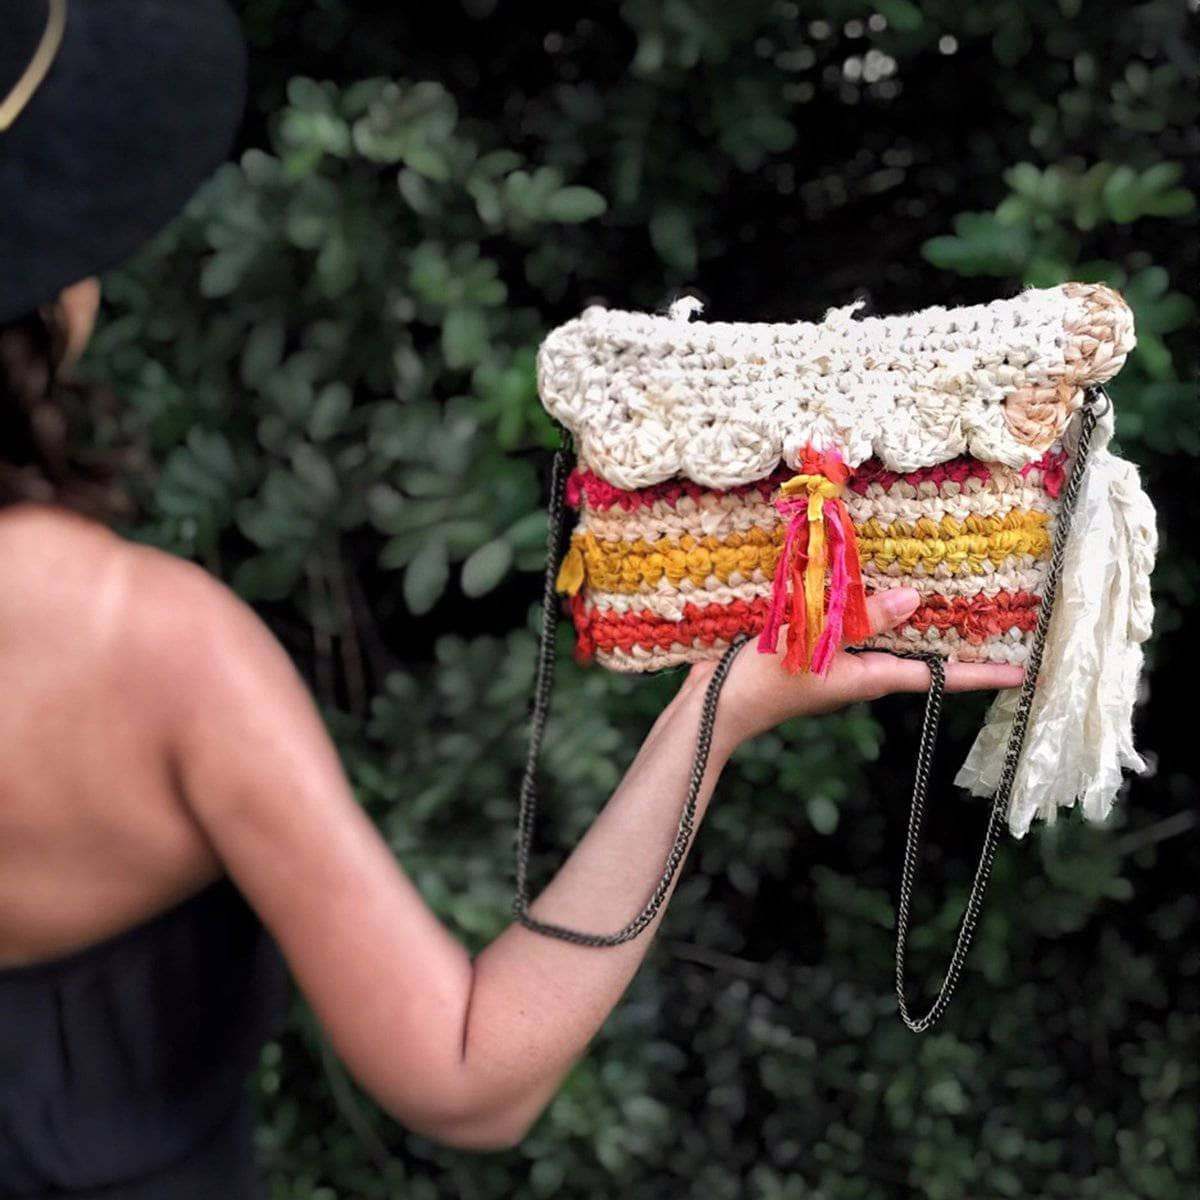 Back view of woman wearing a black hat and holding up a Sun Burst Clutch in front of greenery